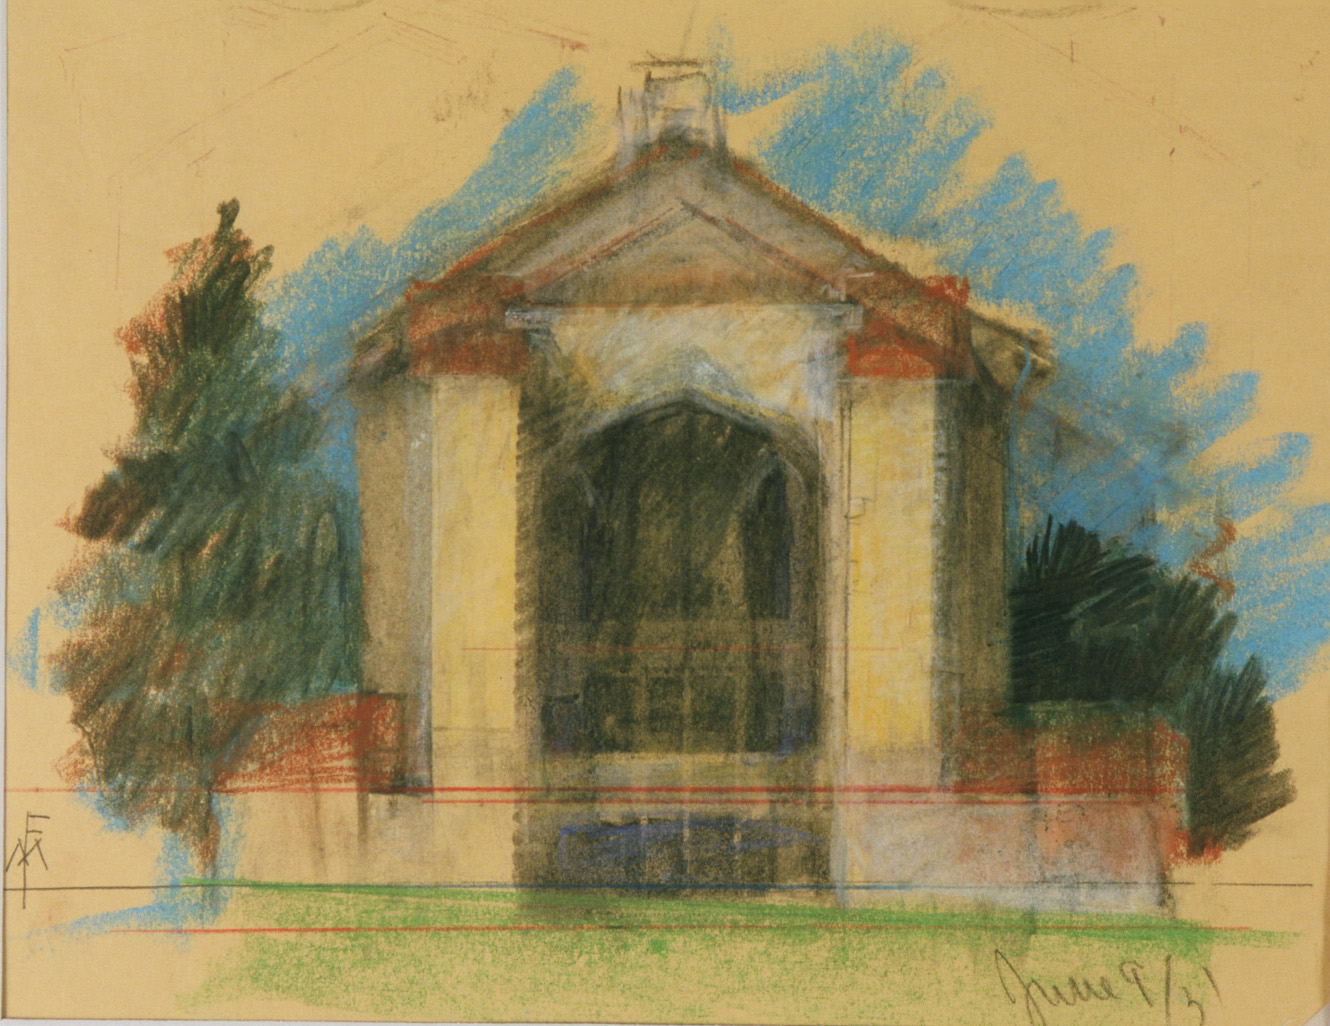 Maybeck & White, Great Hall, Fireplace End, 1939, Pastel, graphite on cream paper, 20 x 15 in.